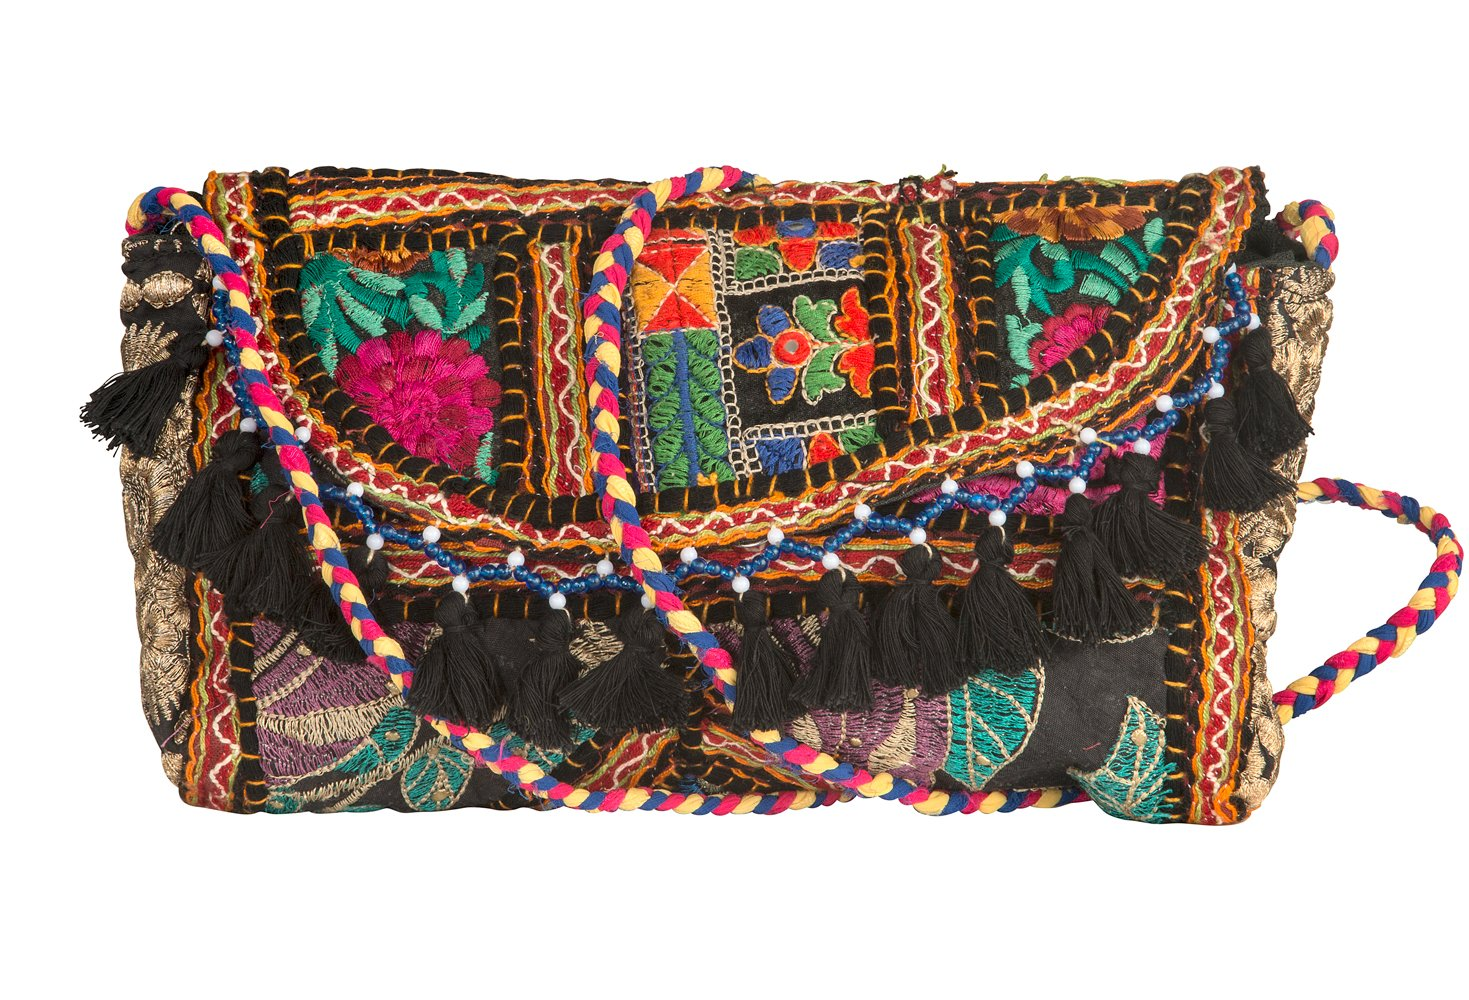 Tribe Azure Satchel Quilted Purse Handbag Tote Cross body Patchwork Embroidered Tassel Women Fashion Boho Hippie Hipster Pom (Black)